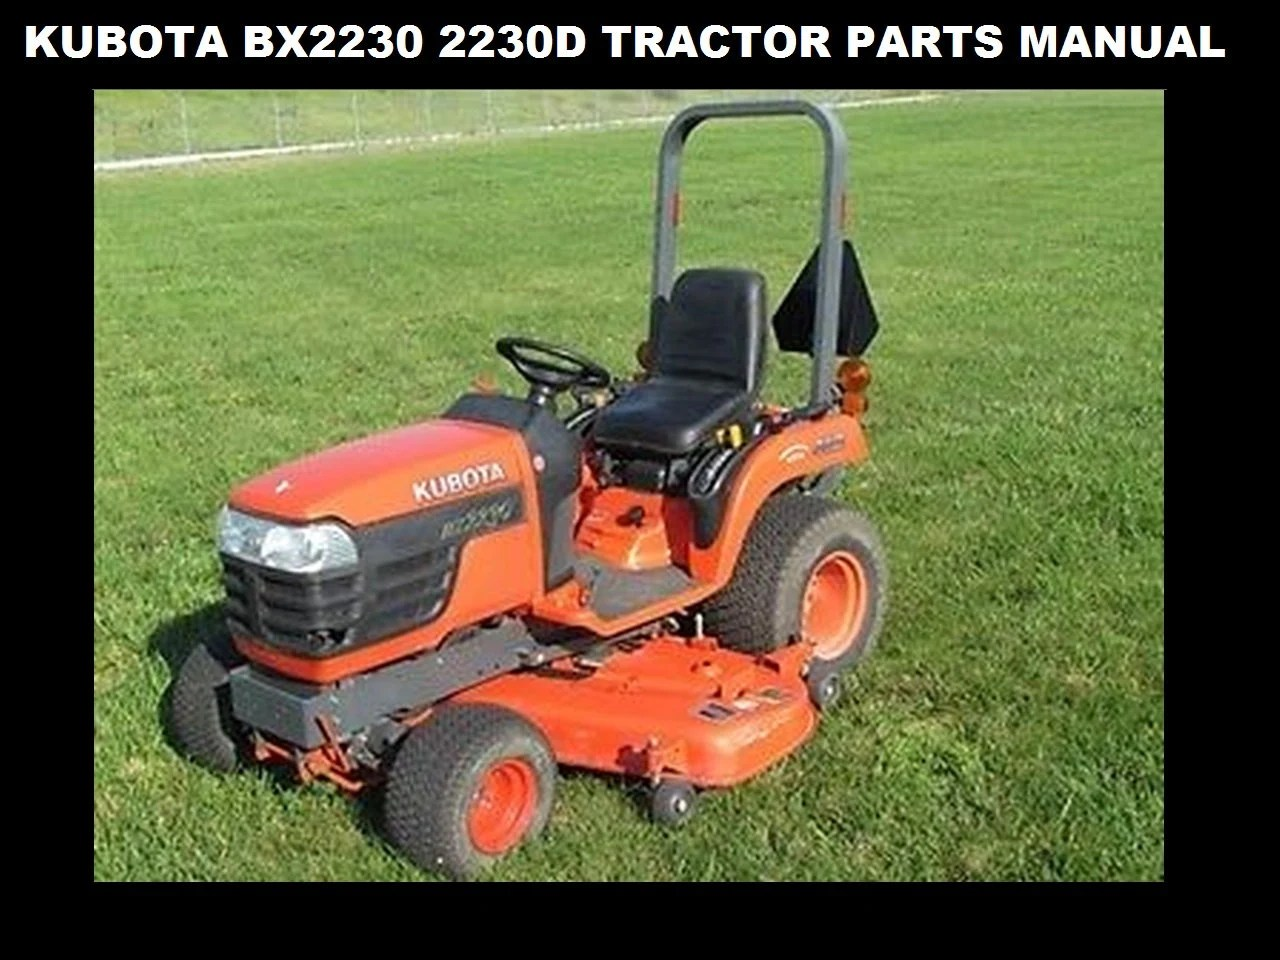 KUBOTA BX 2230 BX 2230 D Parts Manual 260pg of BX2230D Etsy